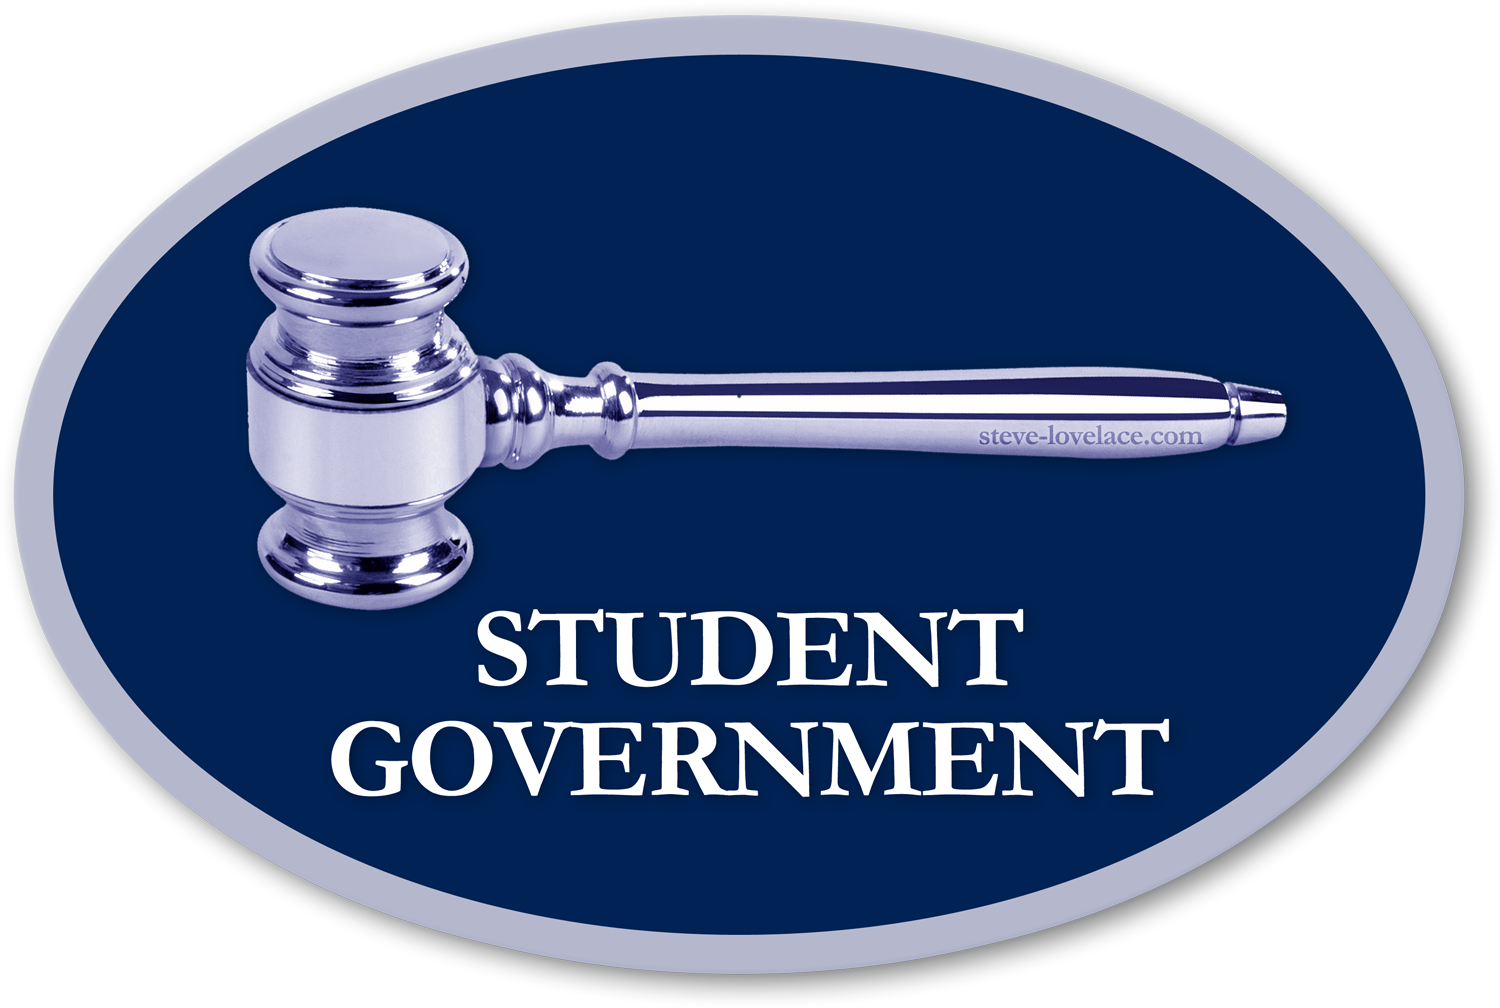 Student Government Day Clipart.